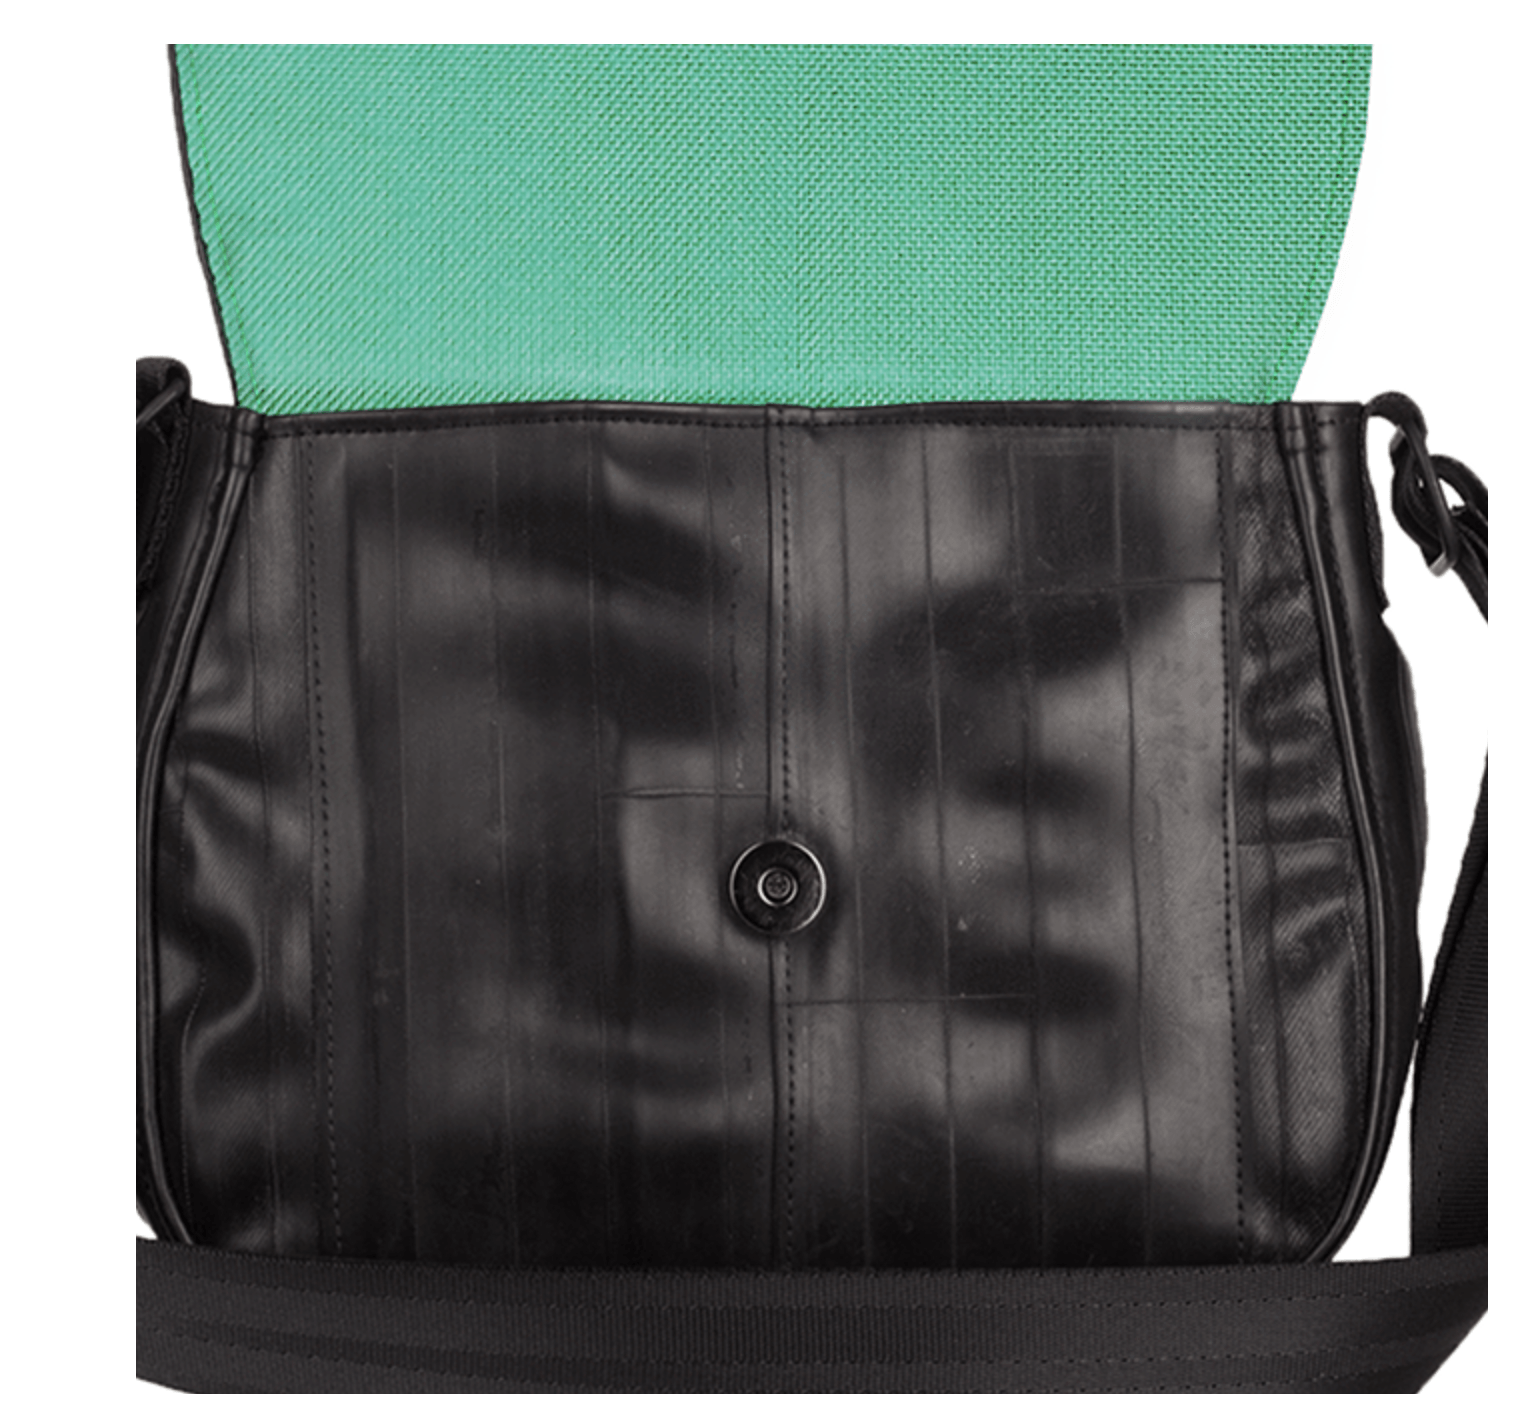 Laurelhurst Crossbody Bag